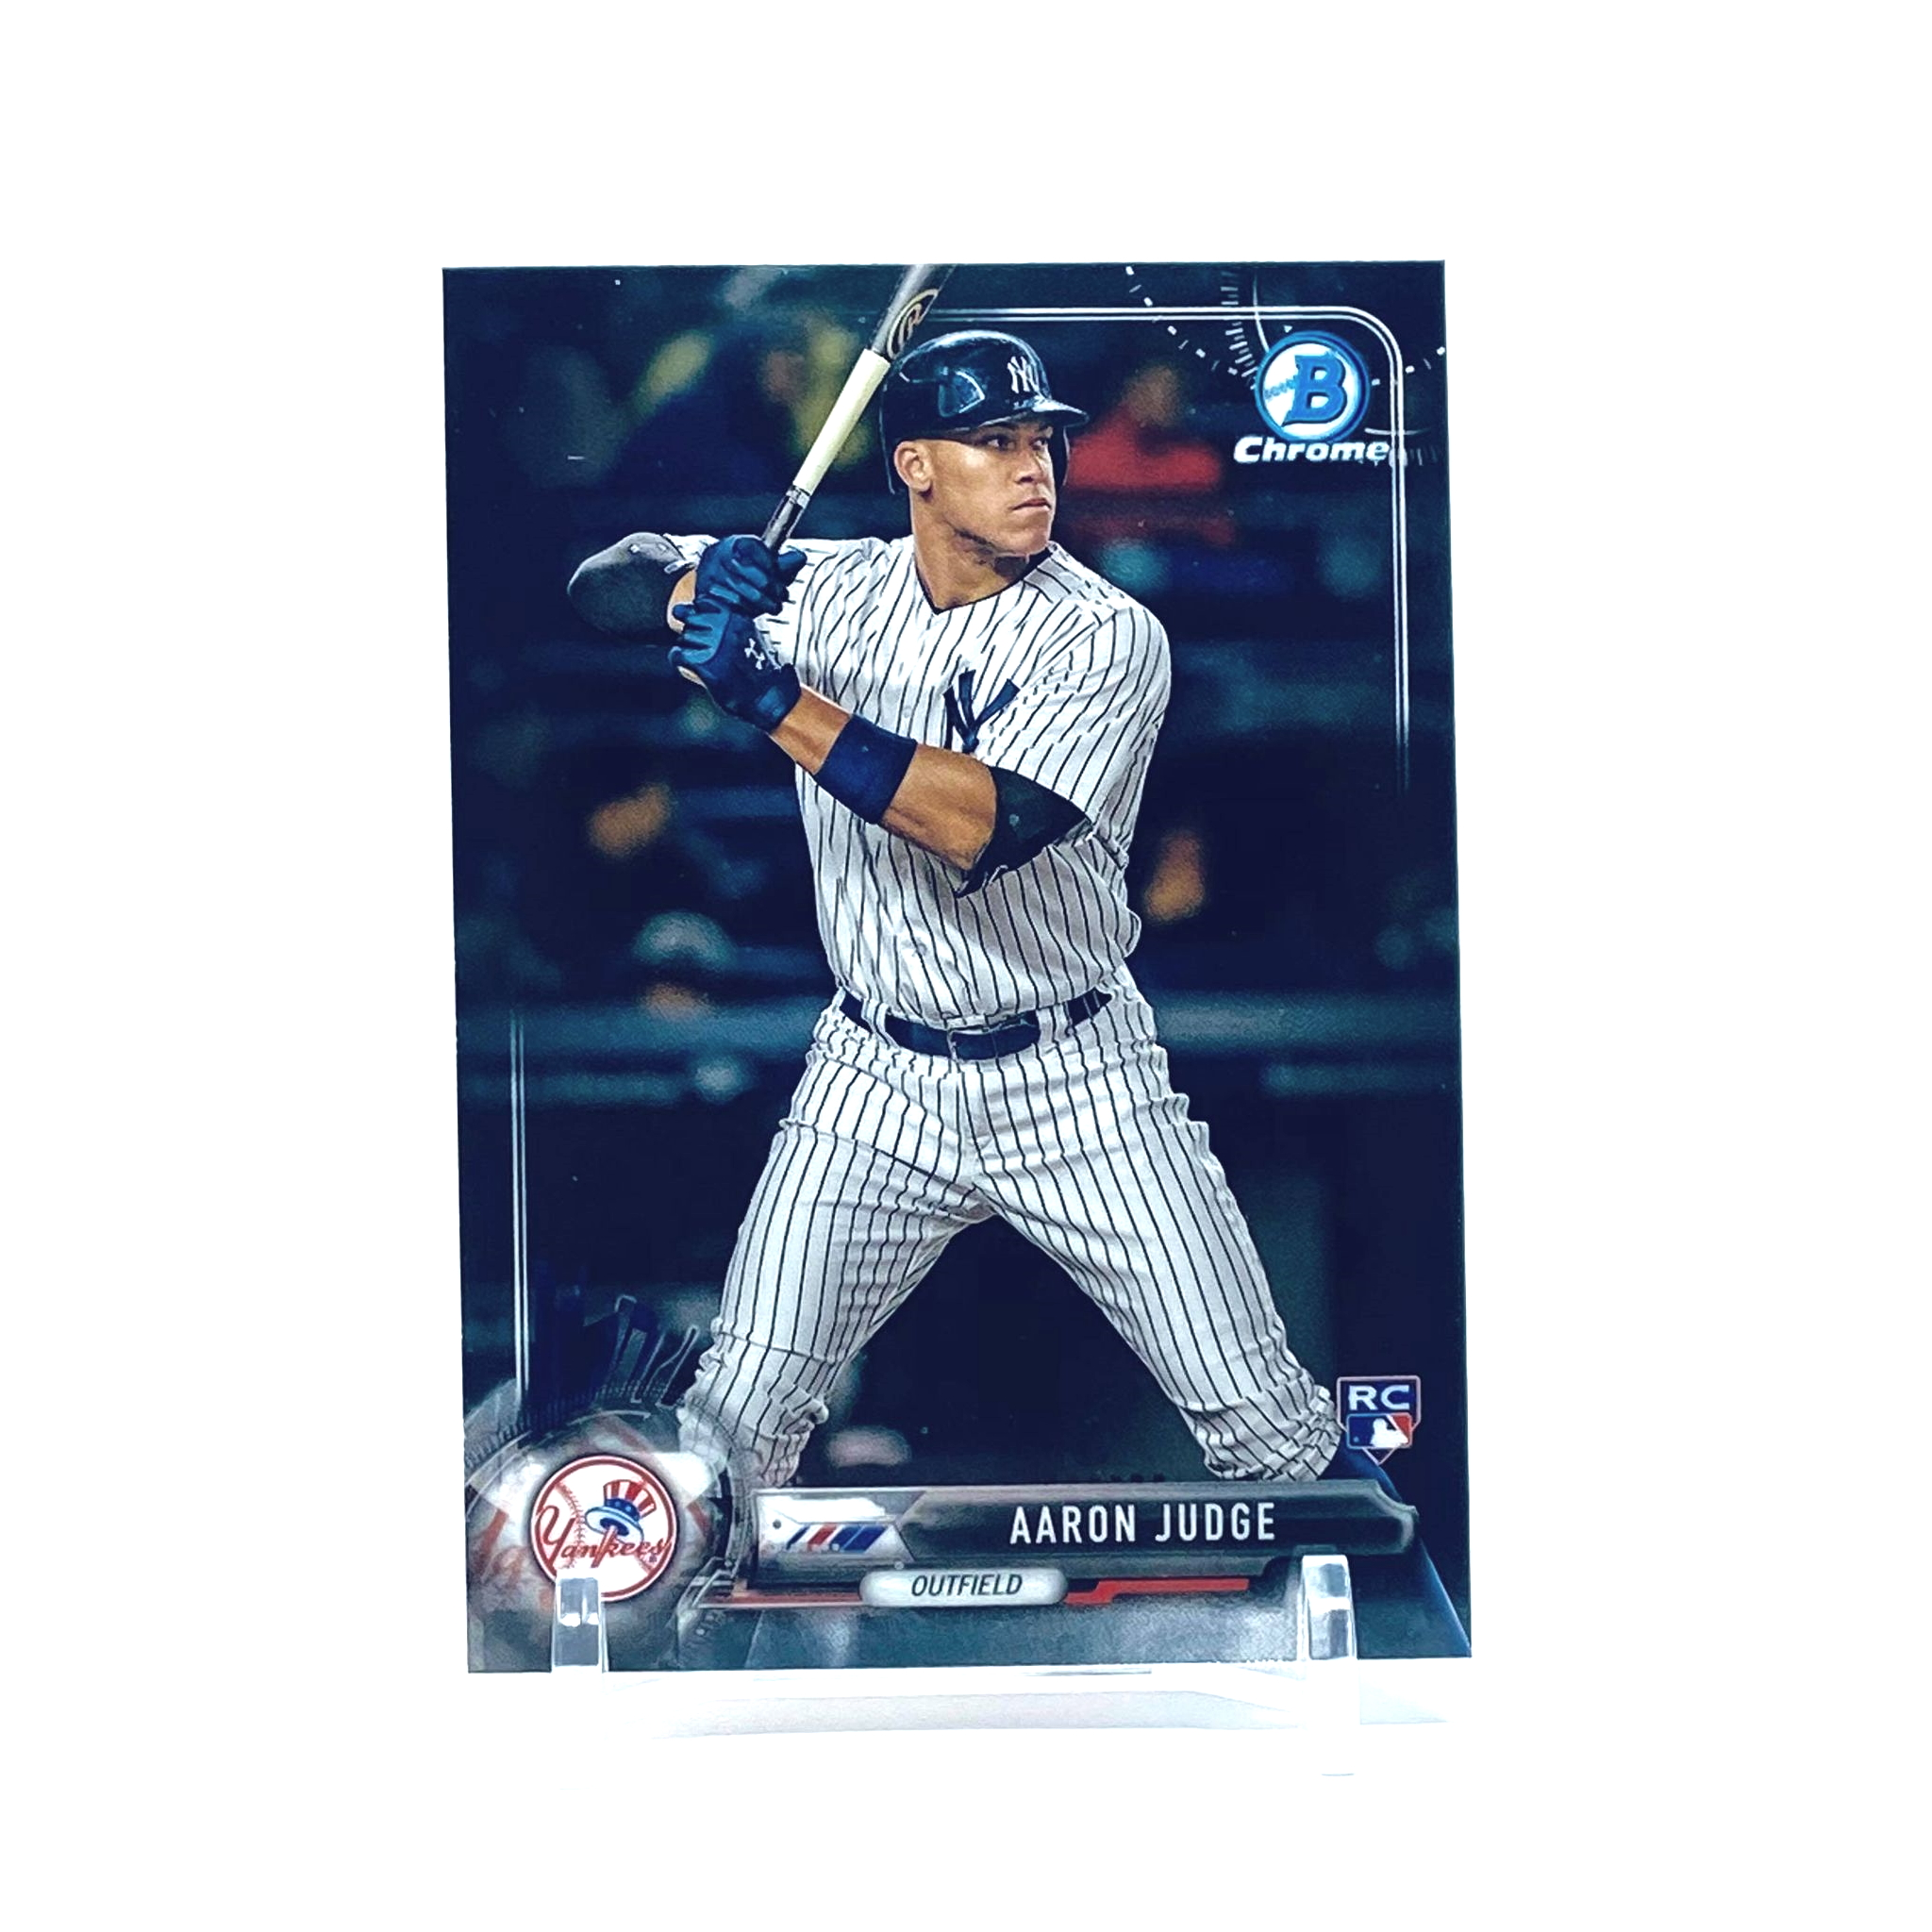 2017 Bowman Chrome Aaron Judge Rookie Card New York Yankees